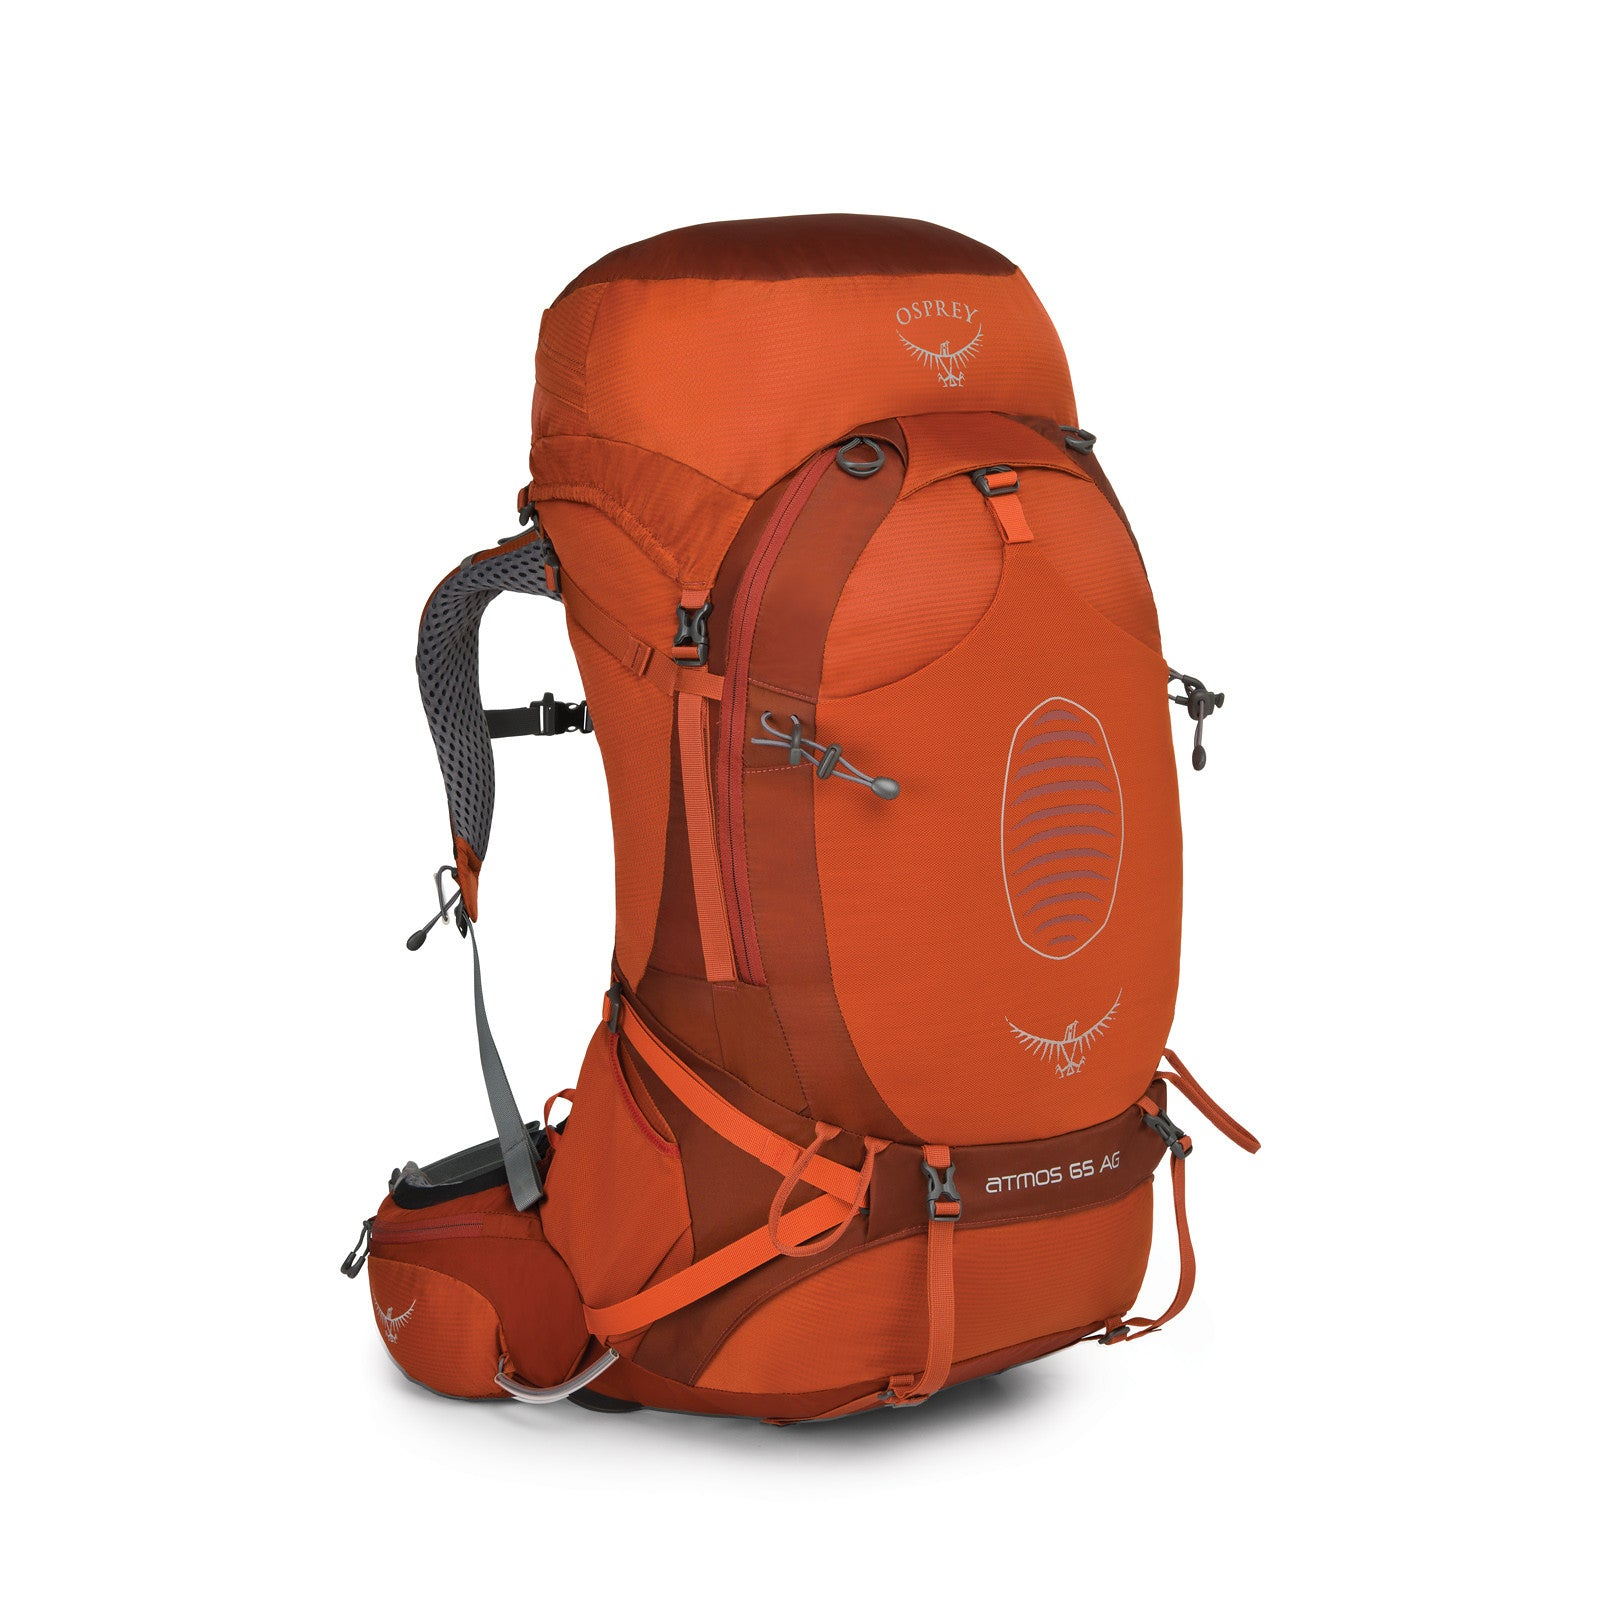 Osprey Atmos 65 Anti-Gravity Men's Backpack